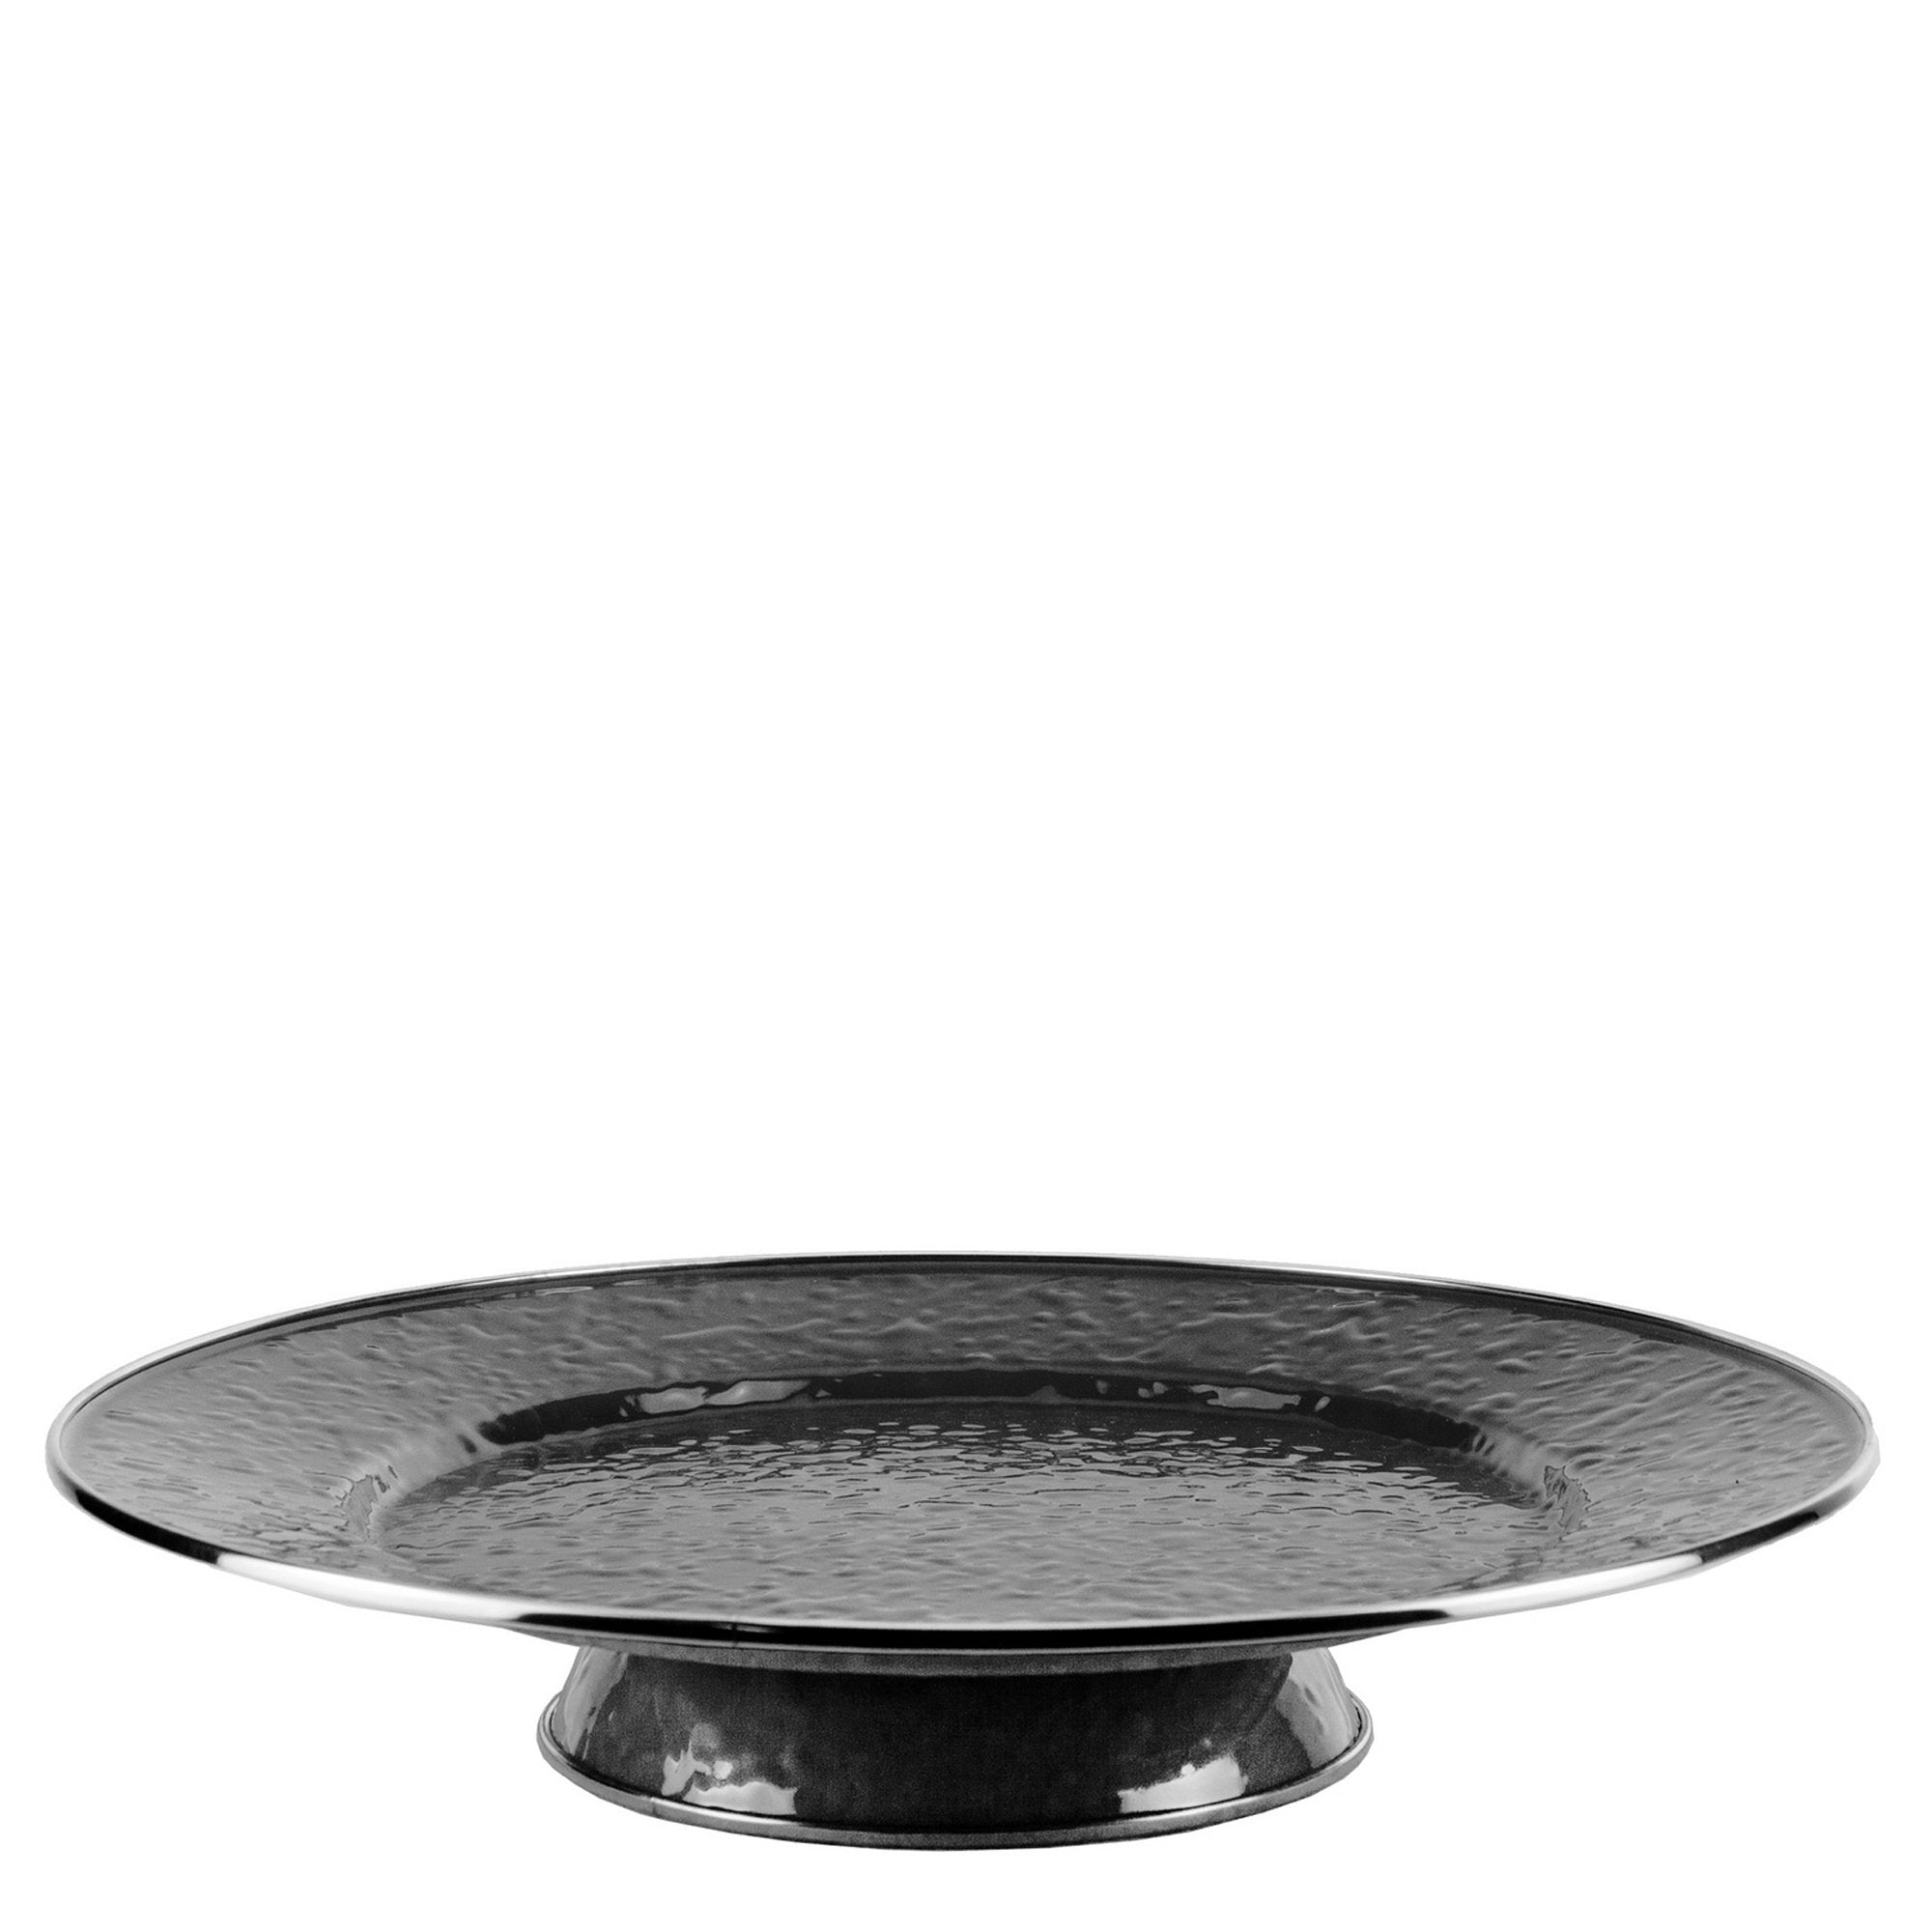 BK76- Enamelware- Solid Black Cake Plate by Golden Rabbit